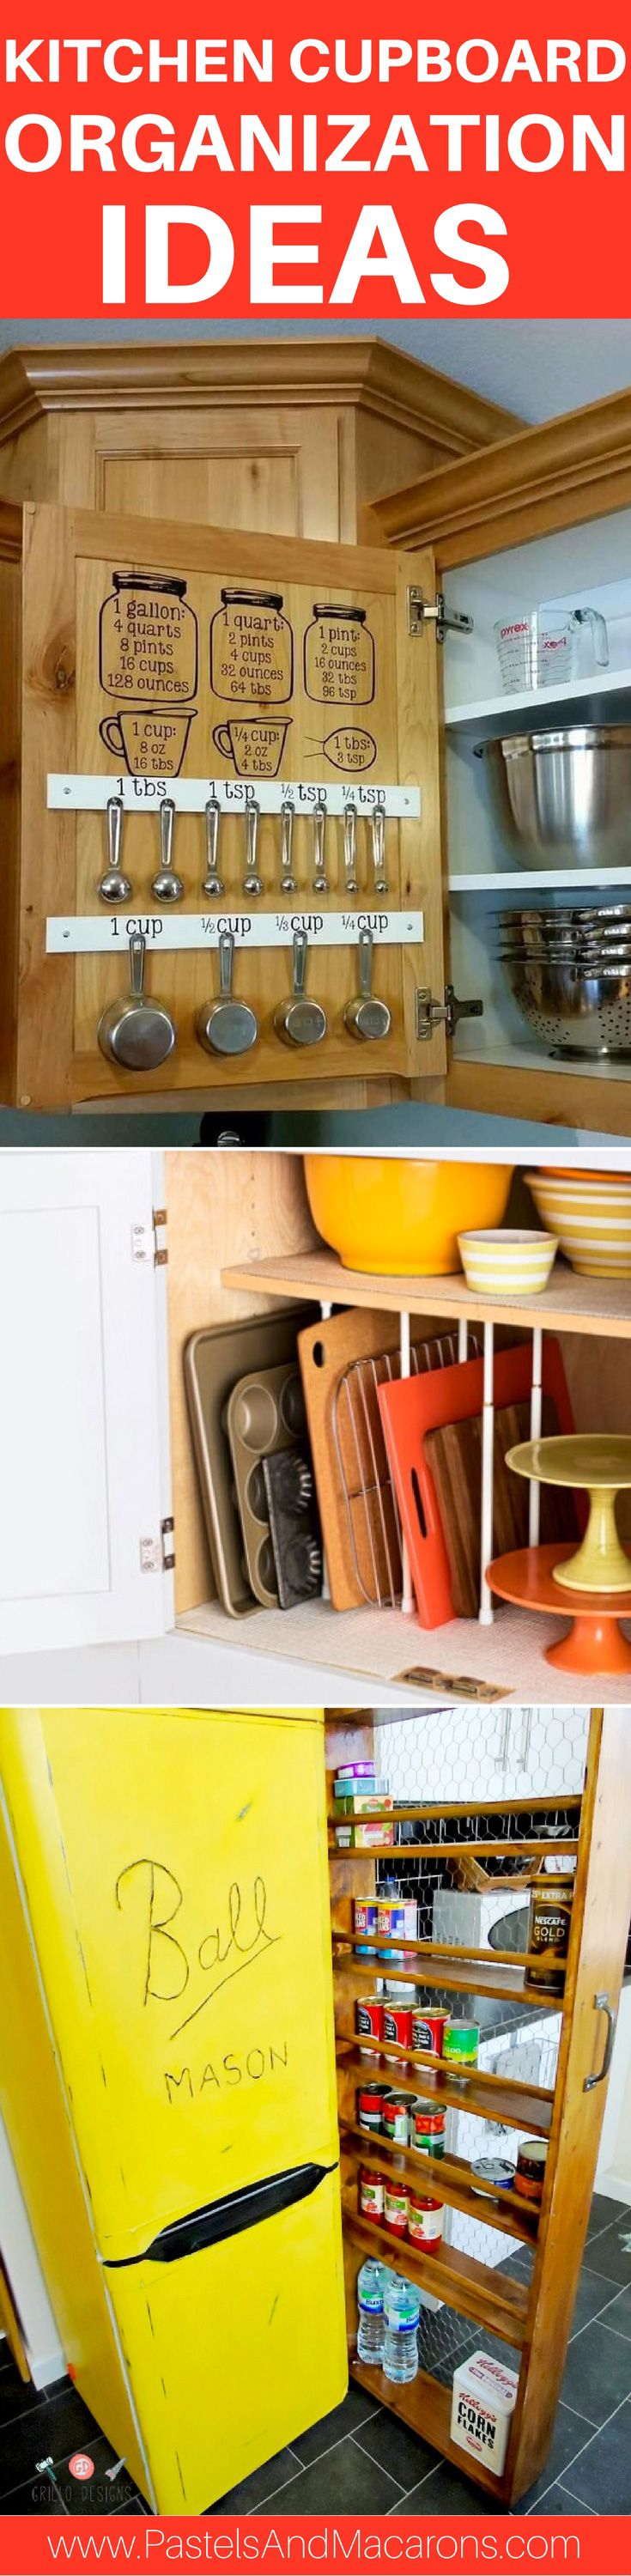 40 clever storage ideas for a small kitchen cupboard organizers 7 awesome kitchen cupboard organization ideas you must try